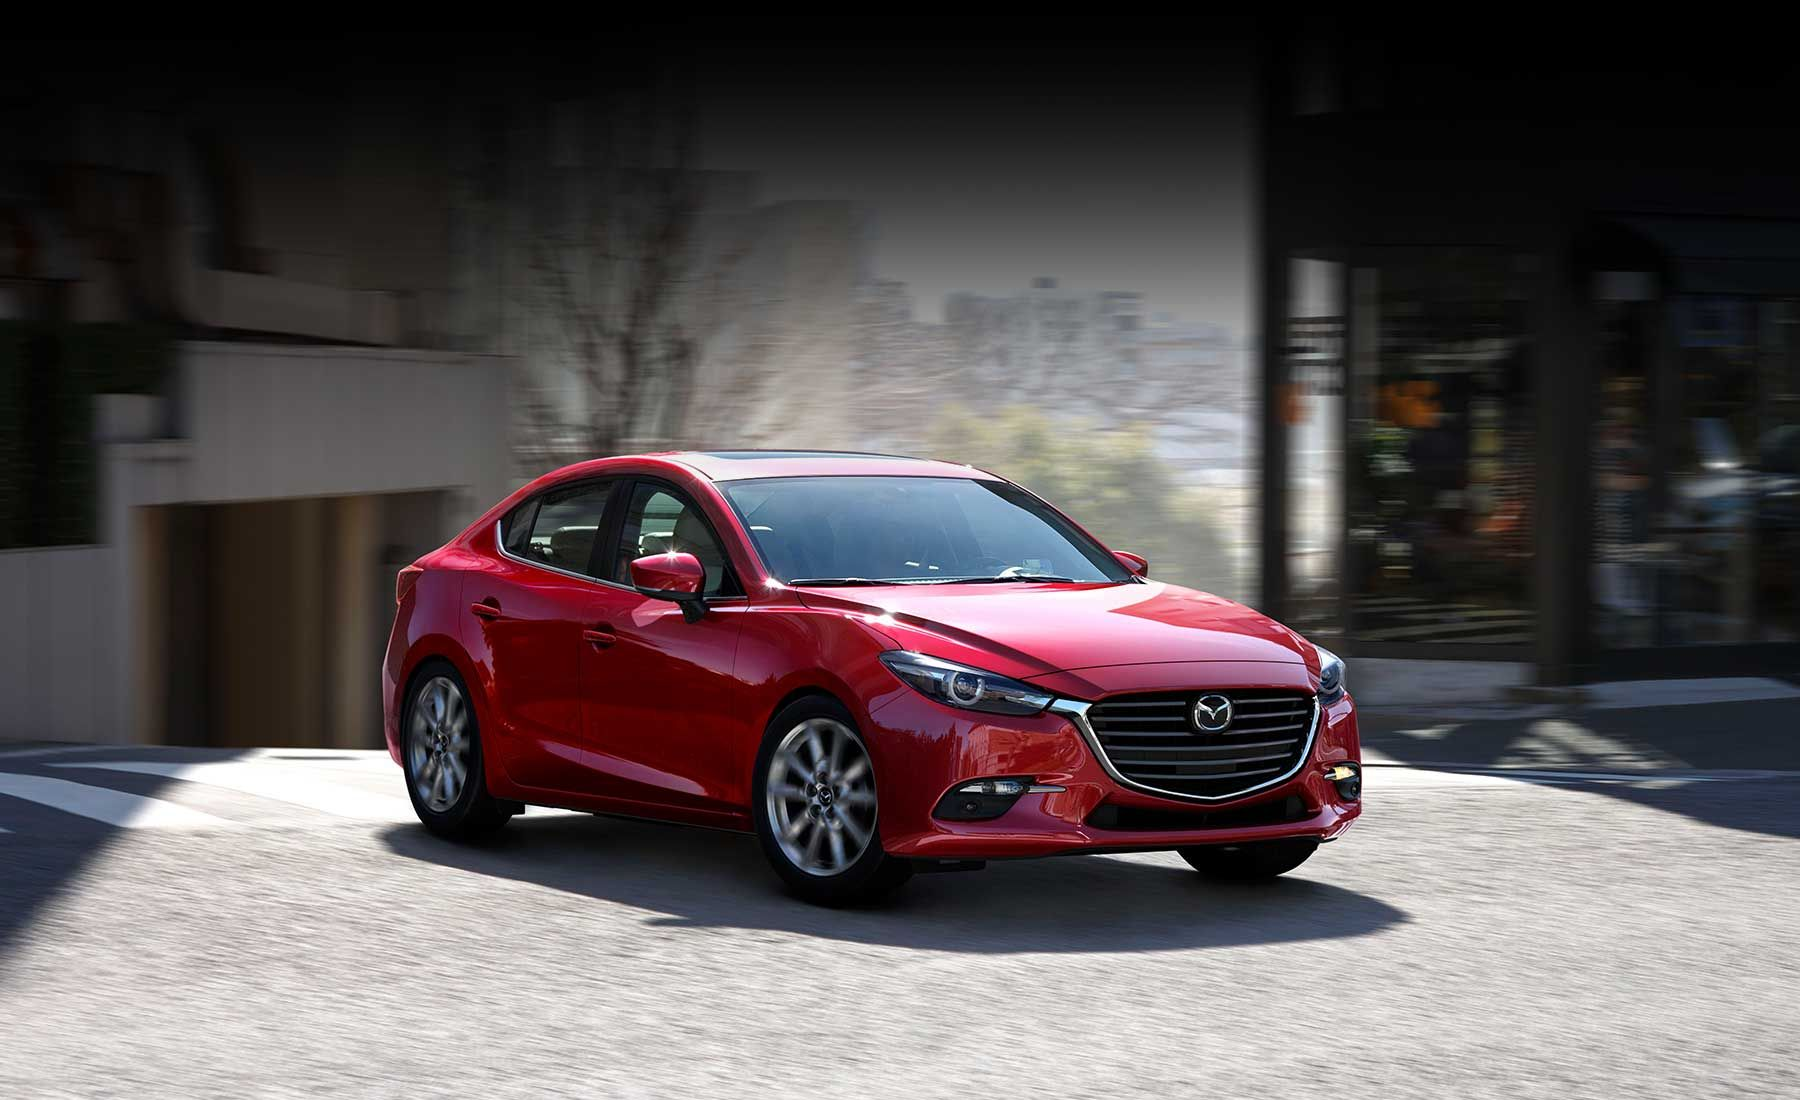 2017 Mazda 3 Sedan Fuel Efficient Compact Car Mazda Usa